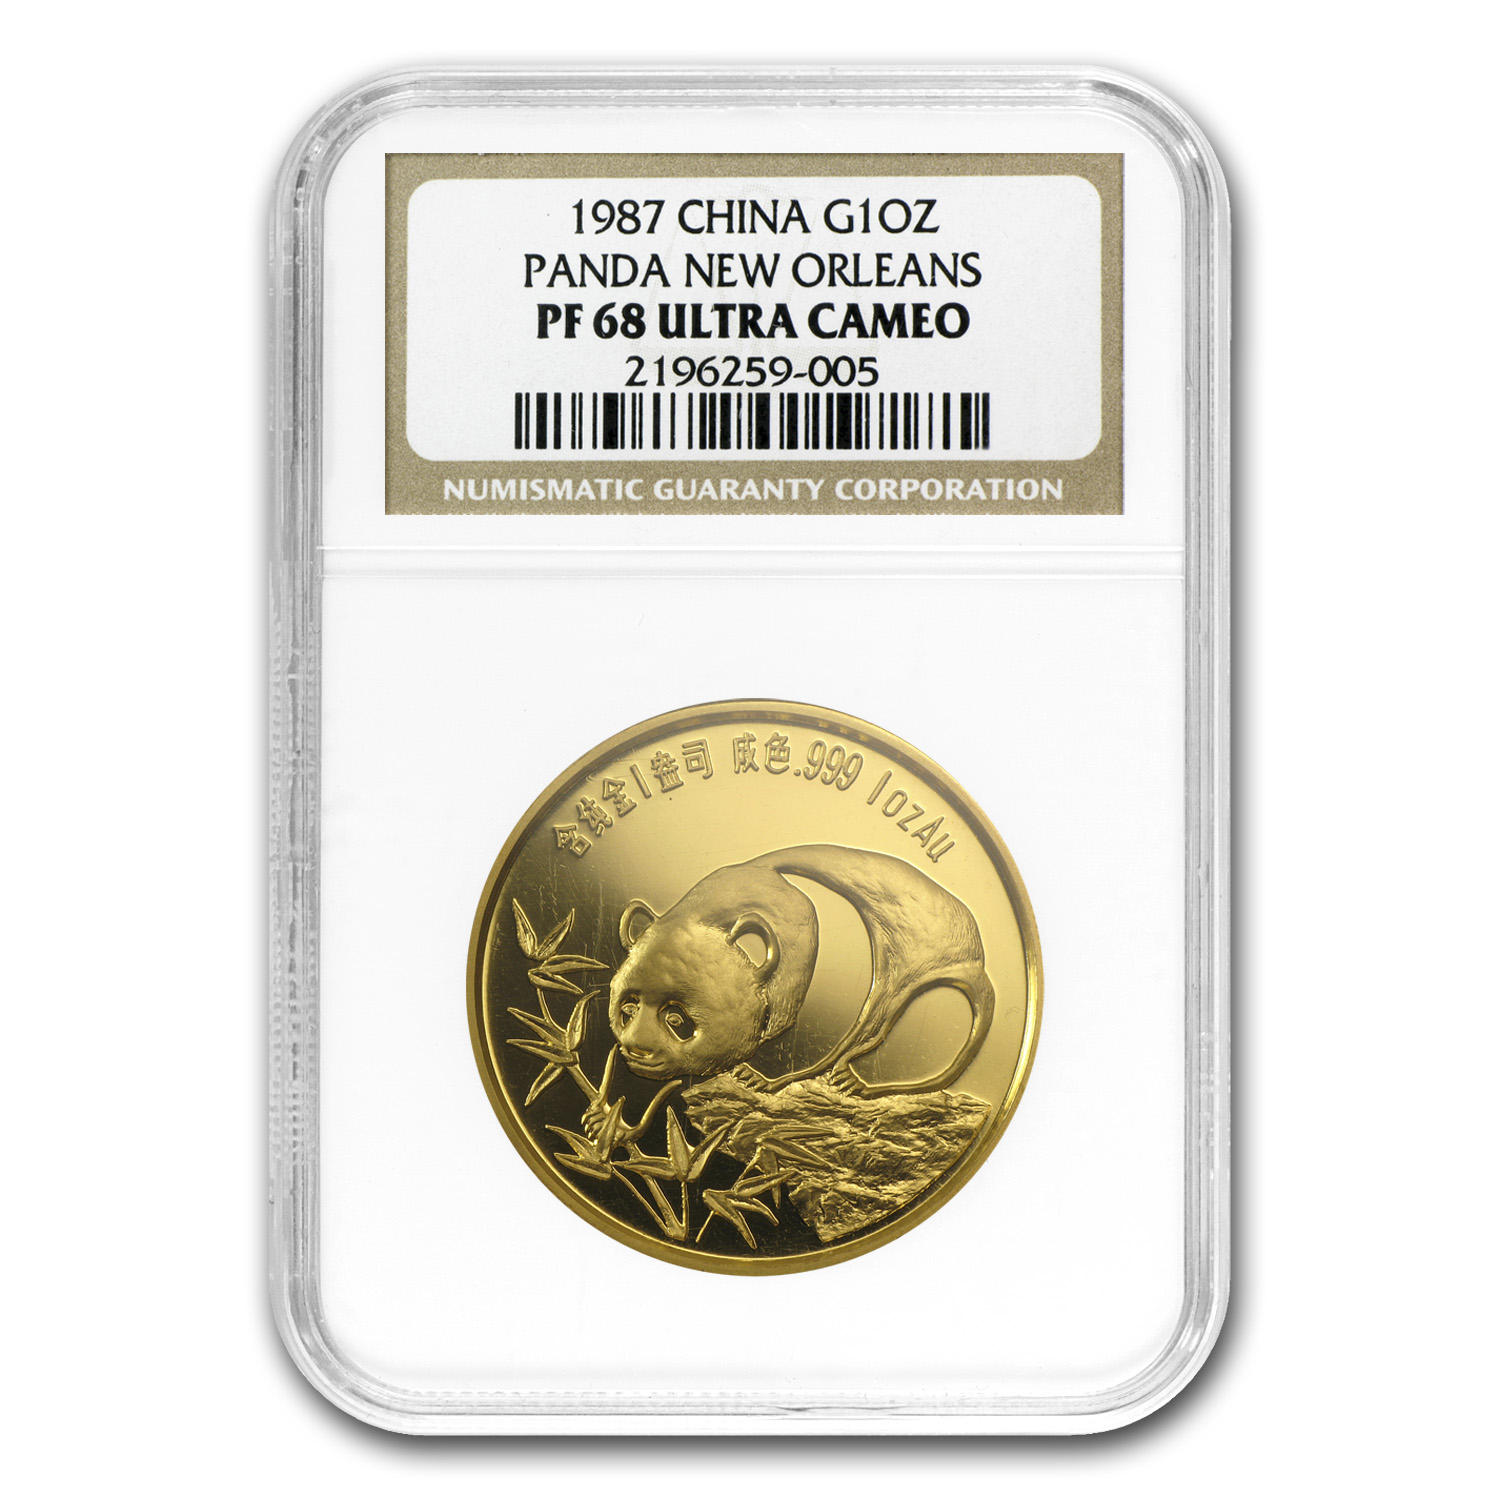 1987 1 oz Gold Chinese Panda - New Orleans PF-68 NGC